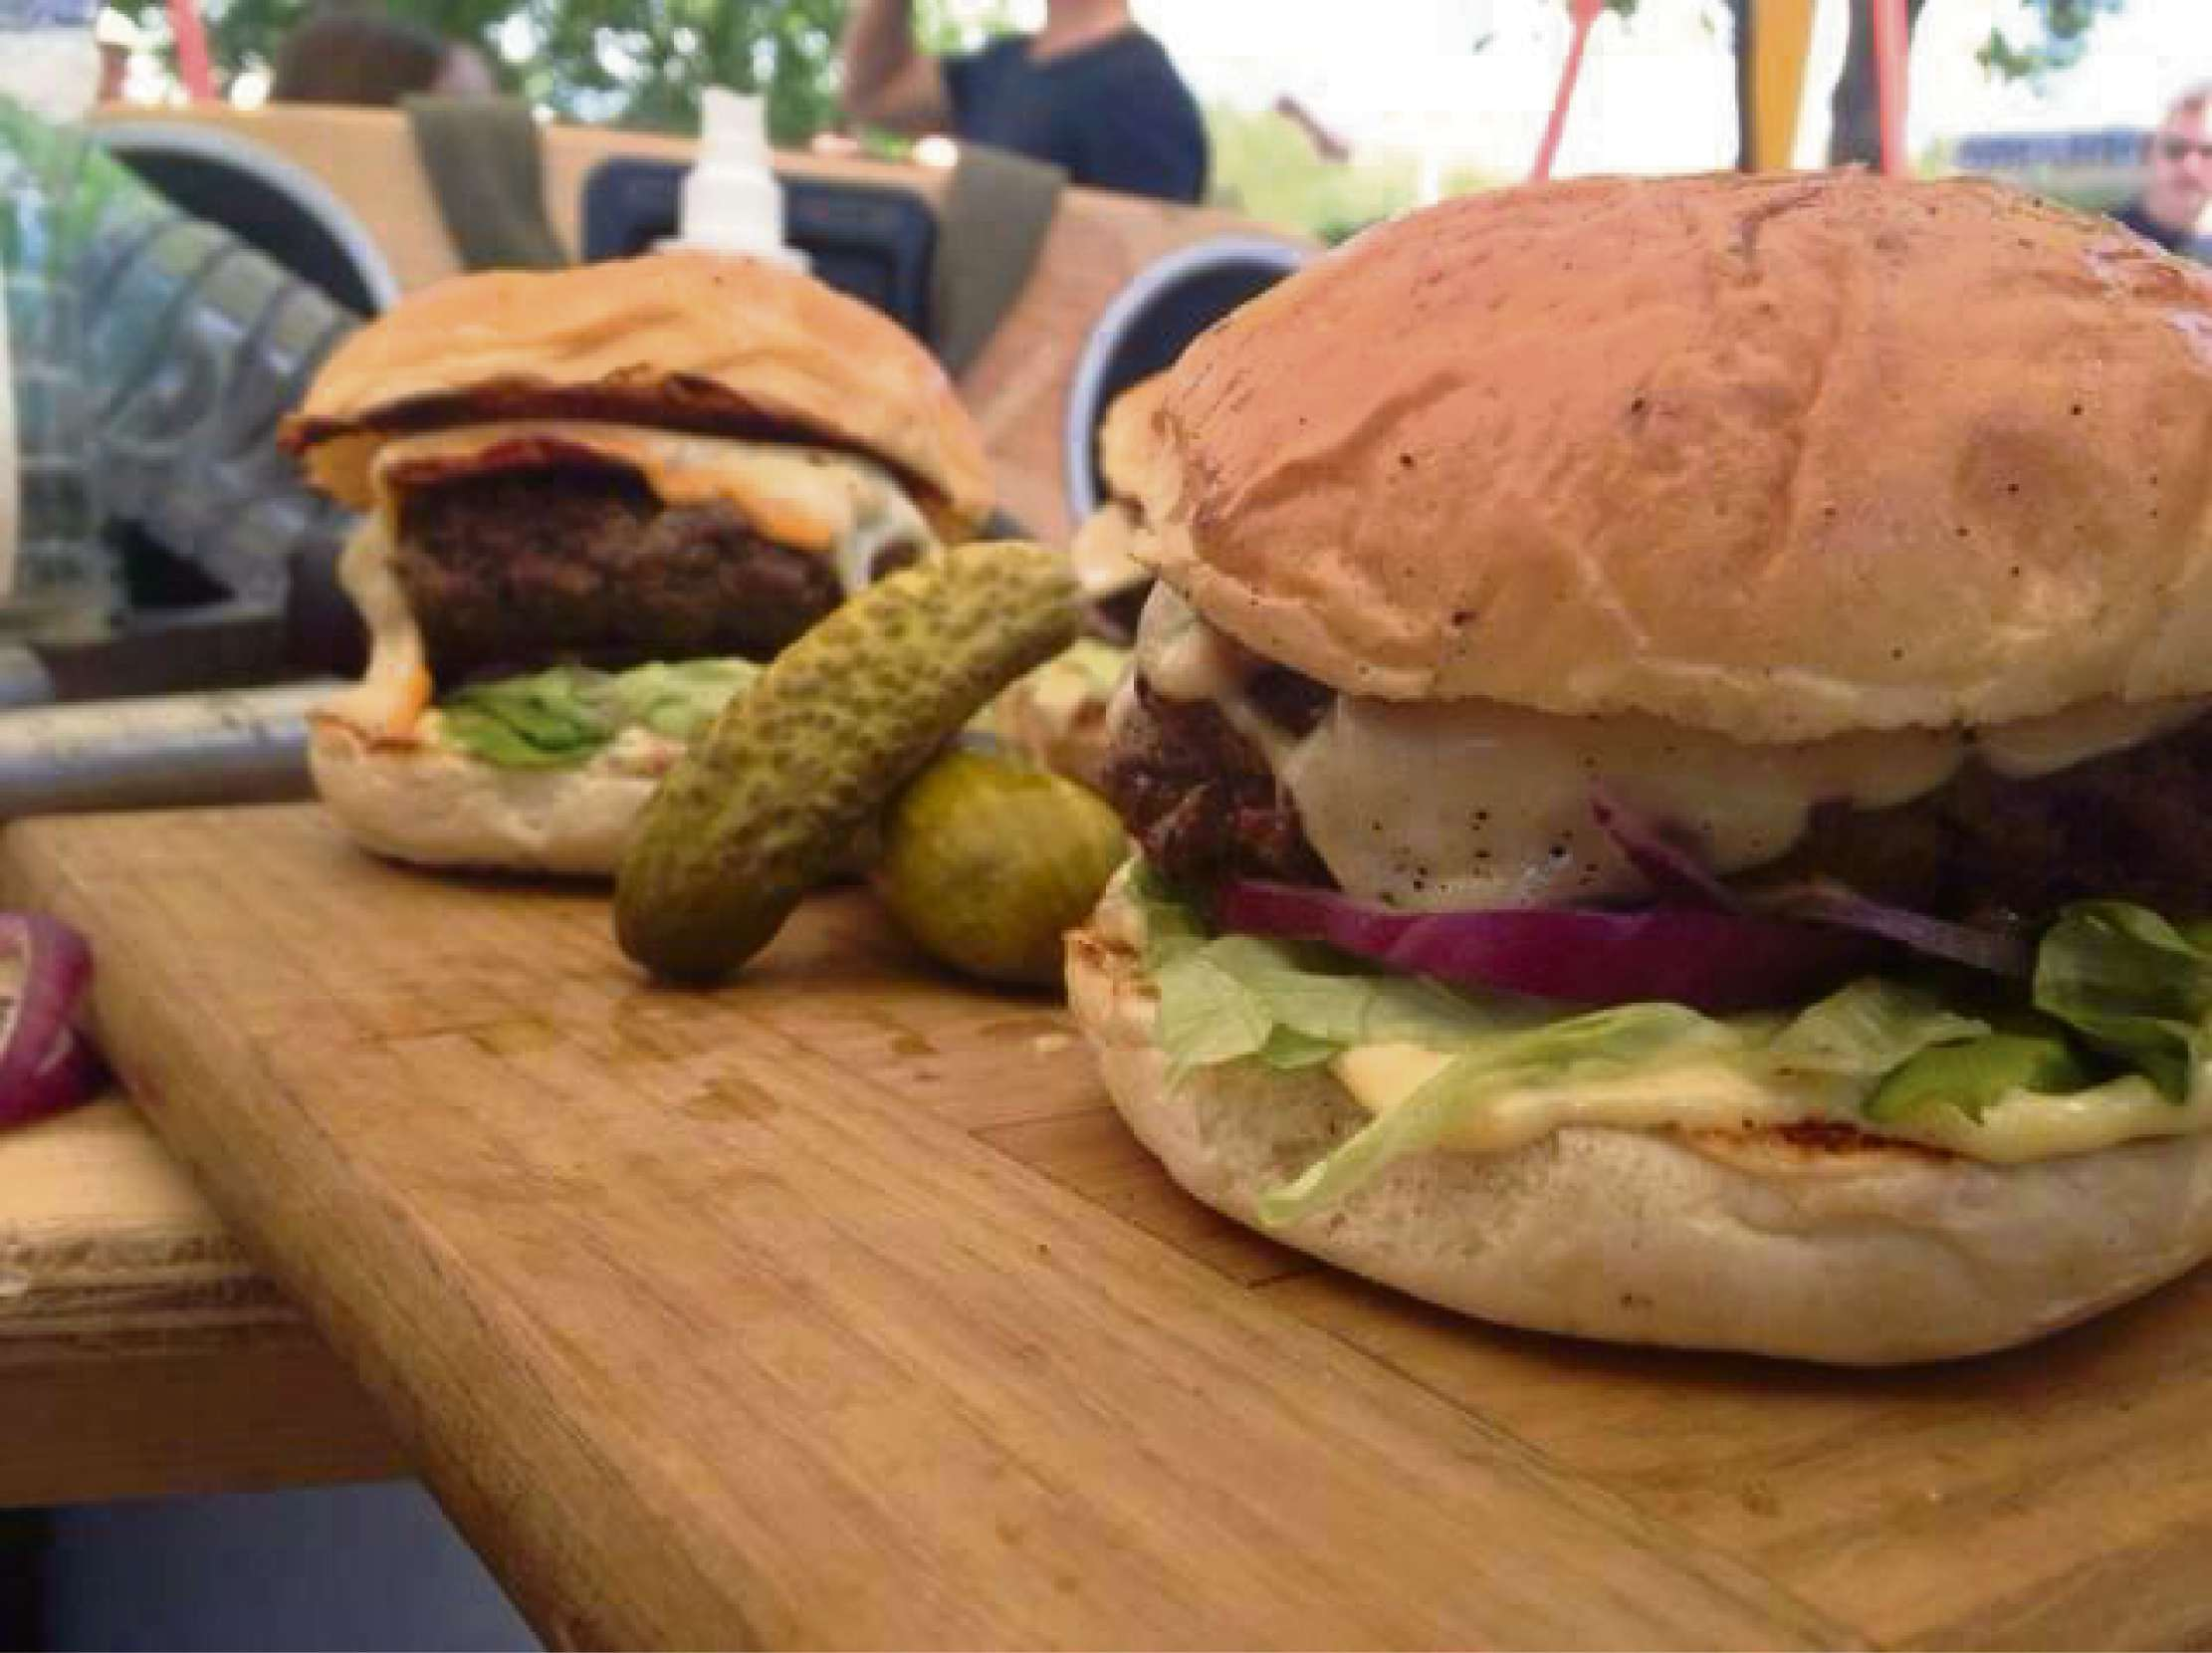 Hereford's Beefy Boys bring home UK's 'Best Burger'